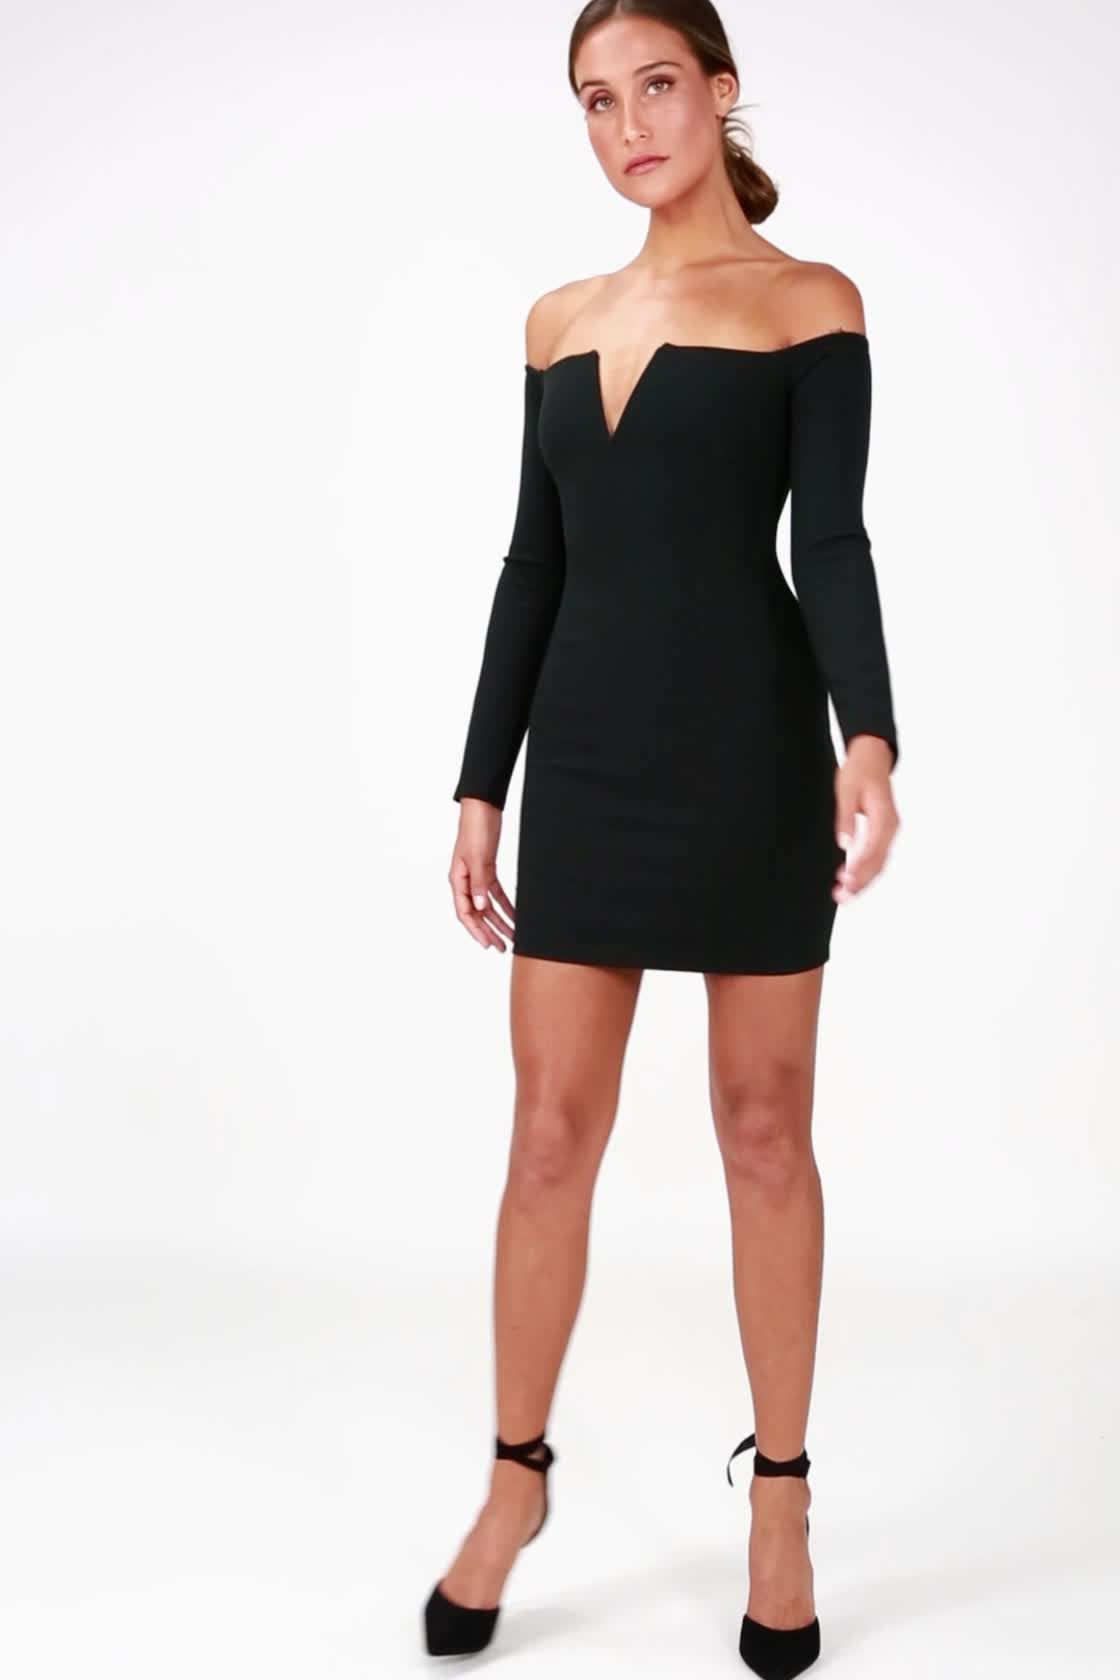 fc1debededb8 Over the Swoon Black Off-the-Shoulder Bodycon Dress in 2018 ...